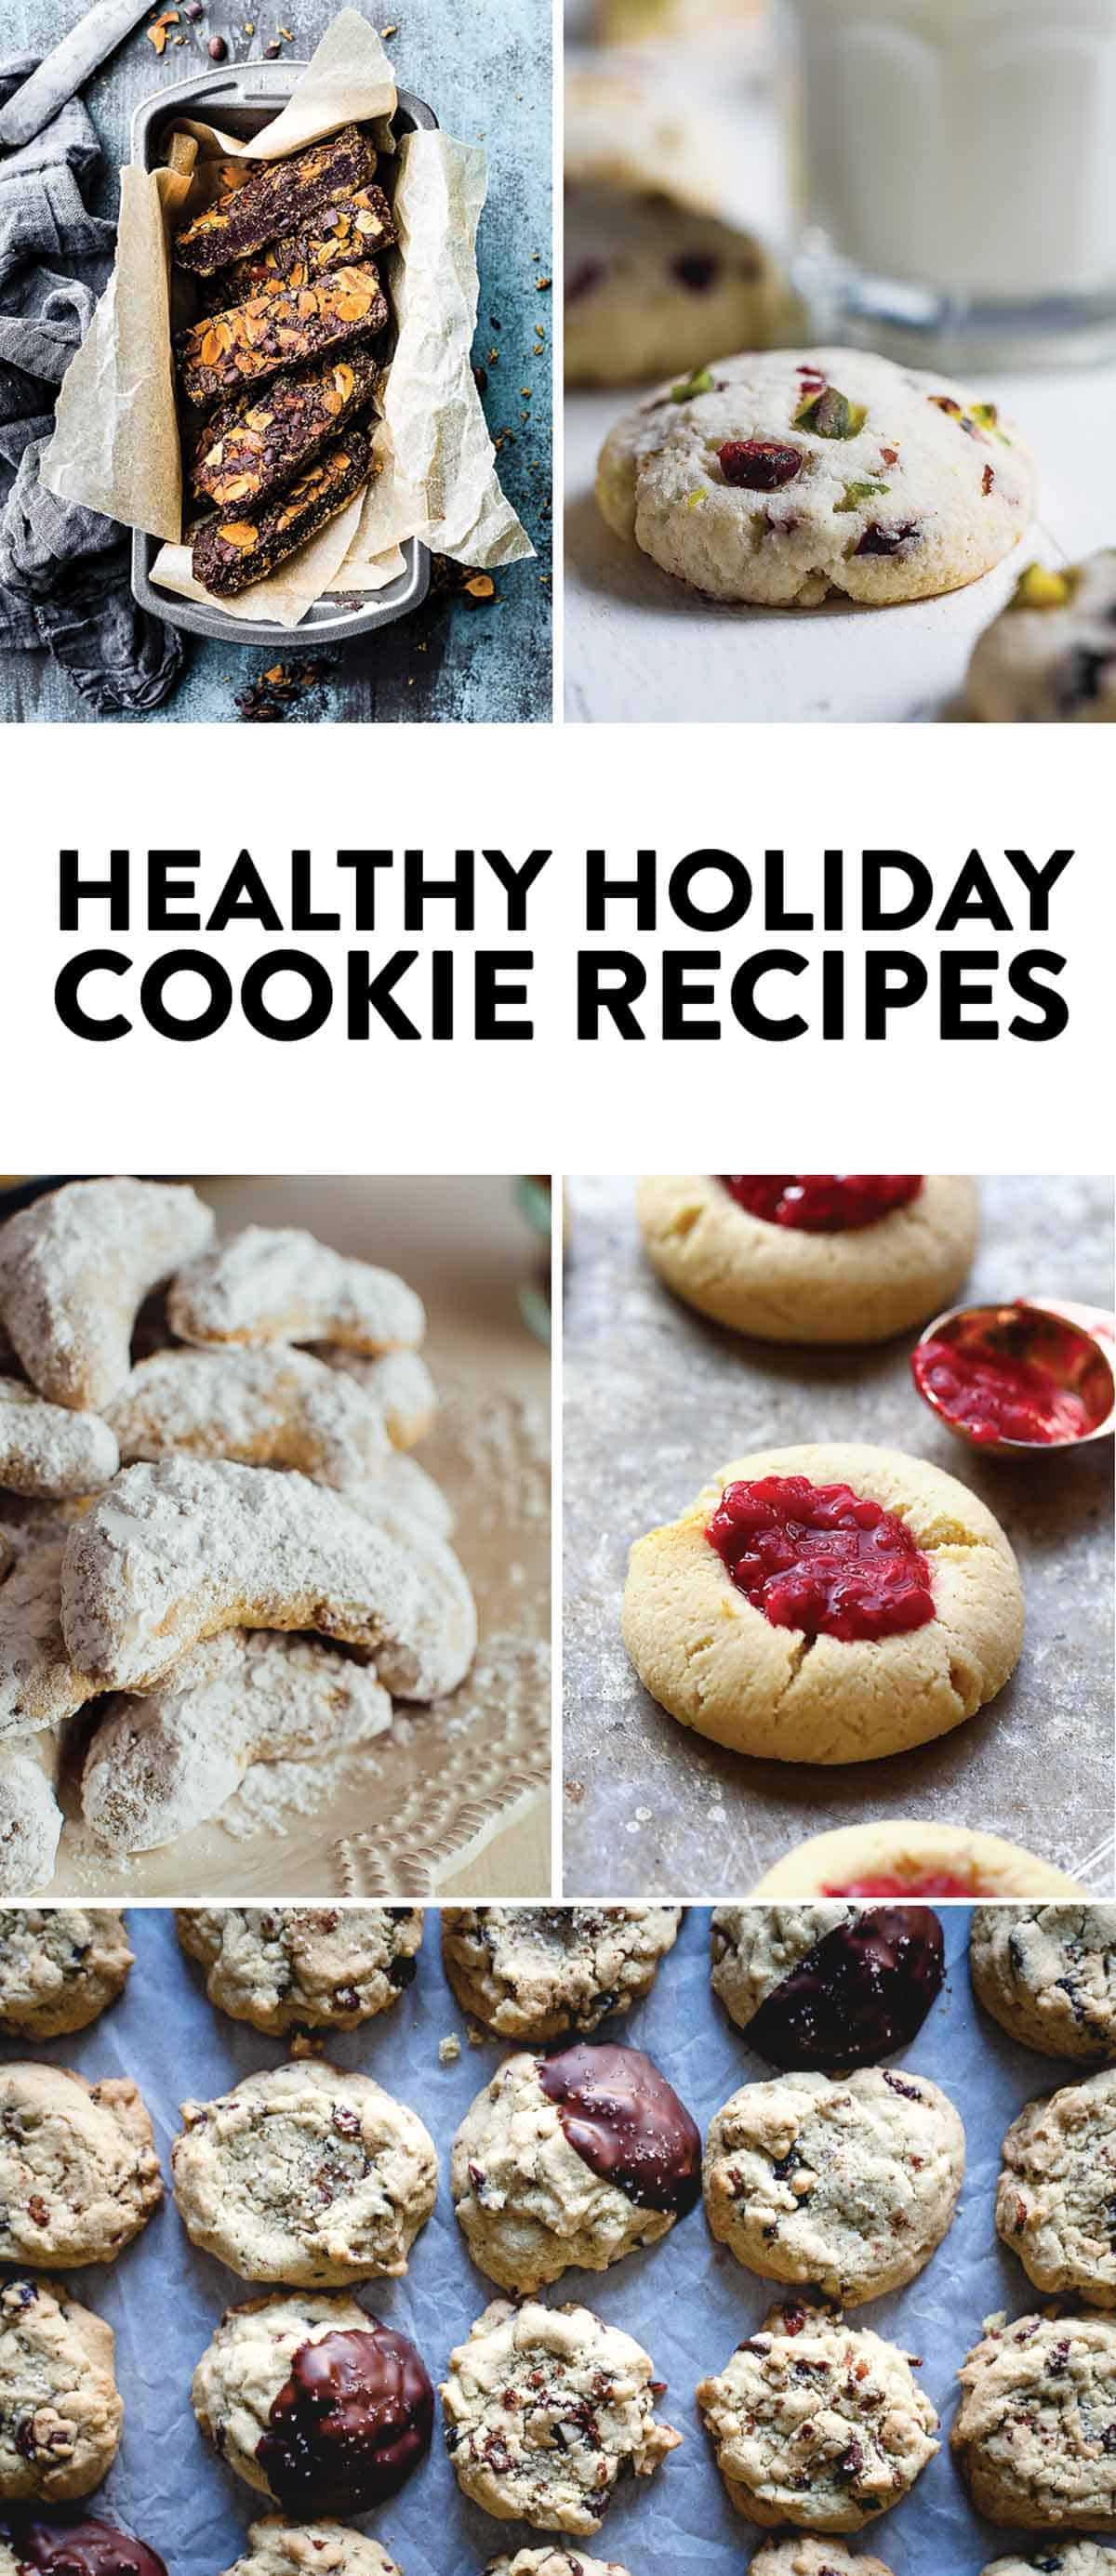 Healthy Holiday Cookie Recipes - all gluten-free!